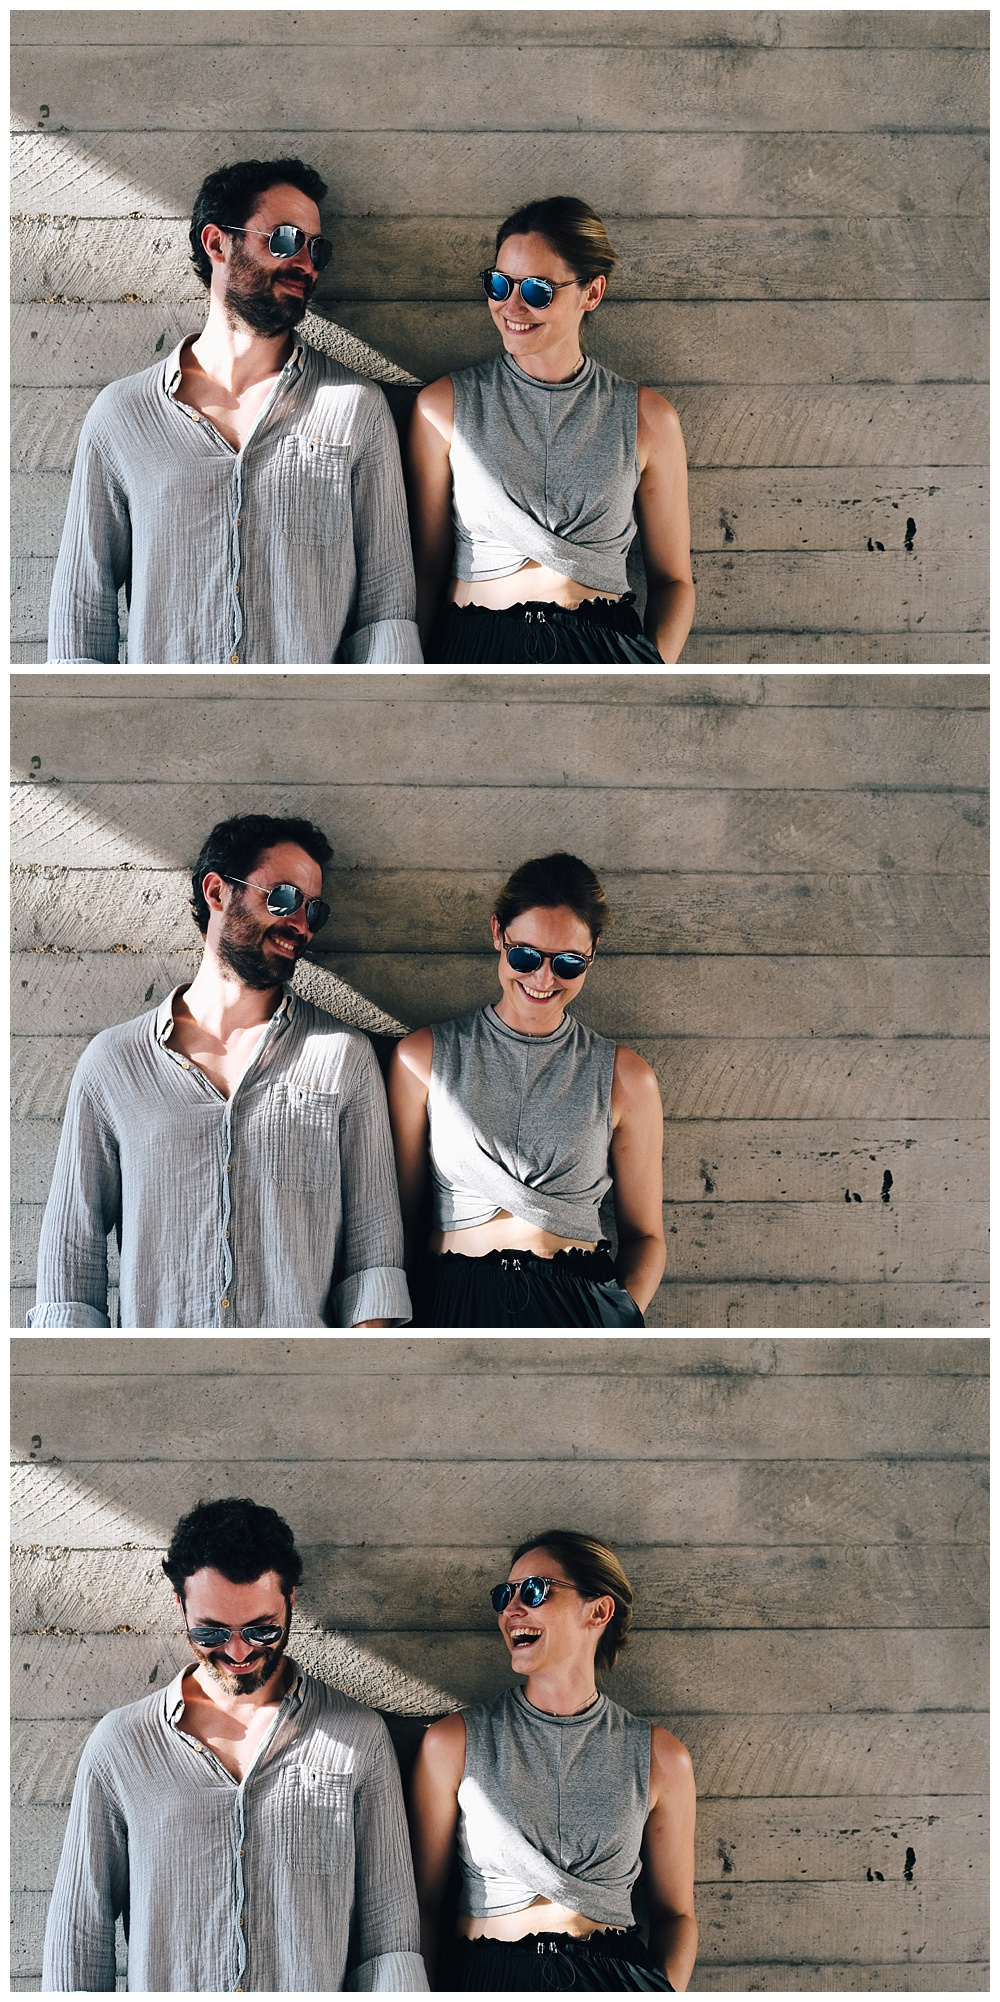 Southbank concrete for a stunning engagement shoot